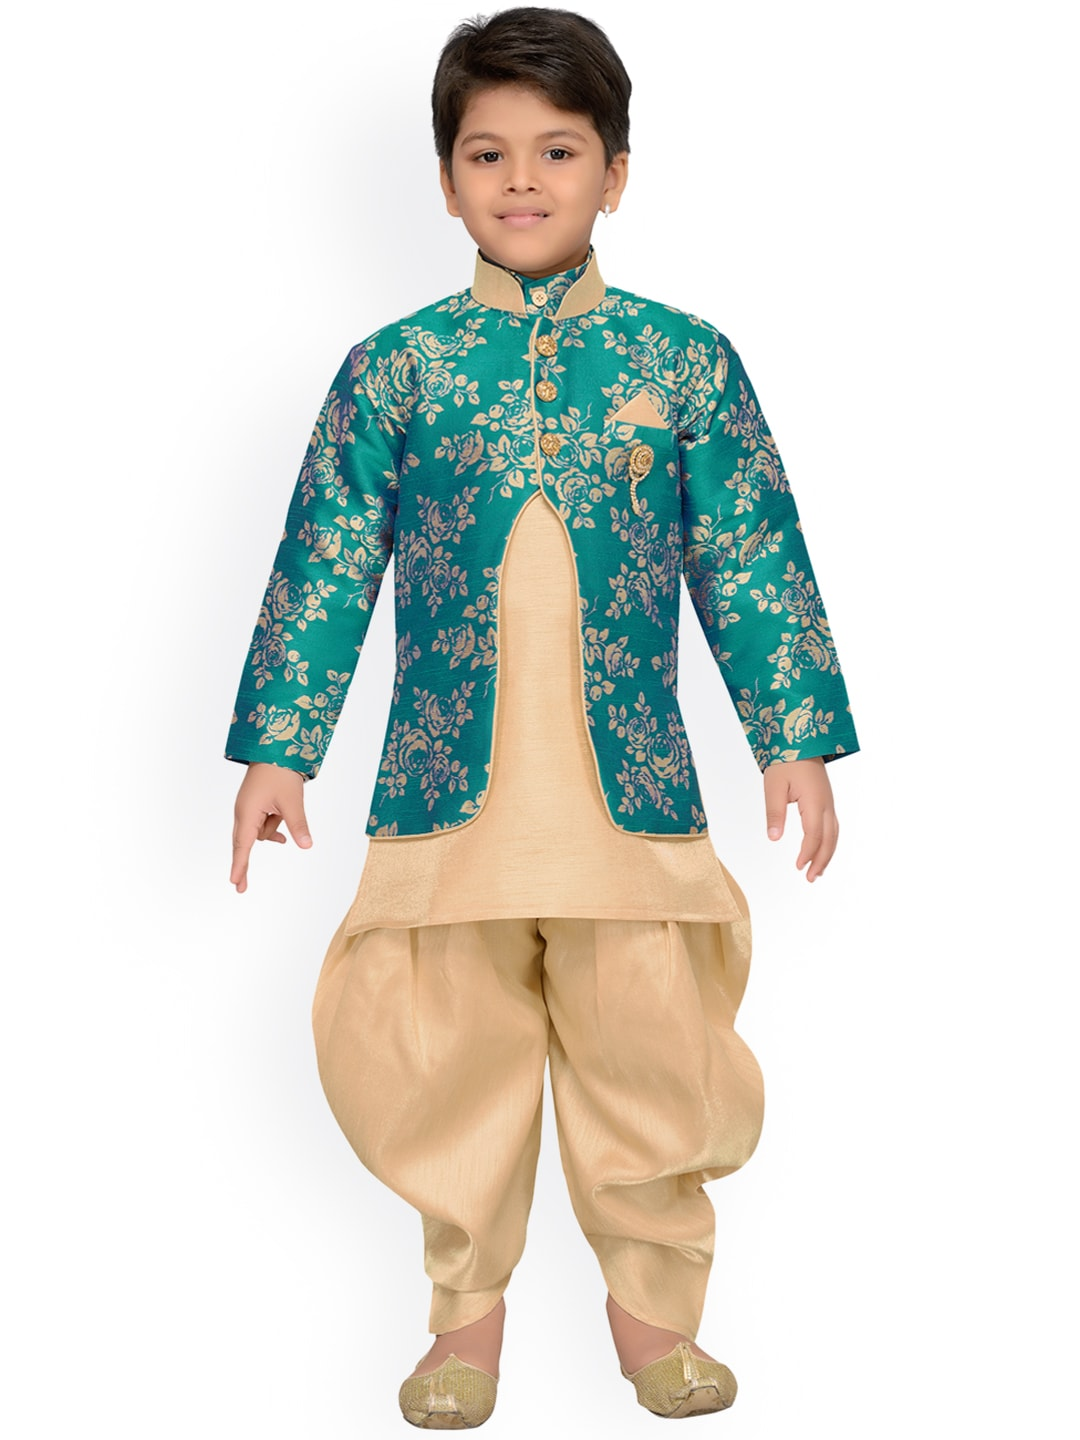 Sherwani Boys Girls Caps - Buy Sherwani Boys Girls Caps online in India cf698ac1de7